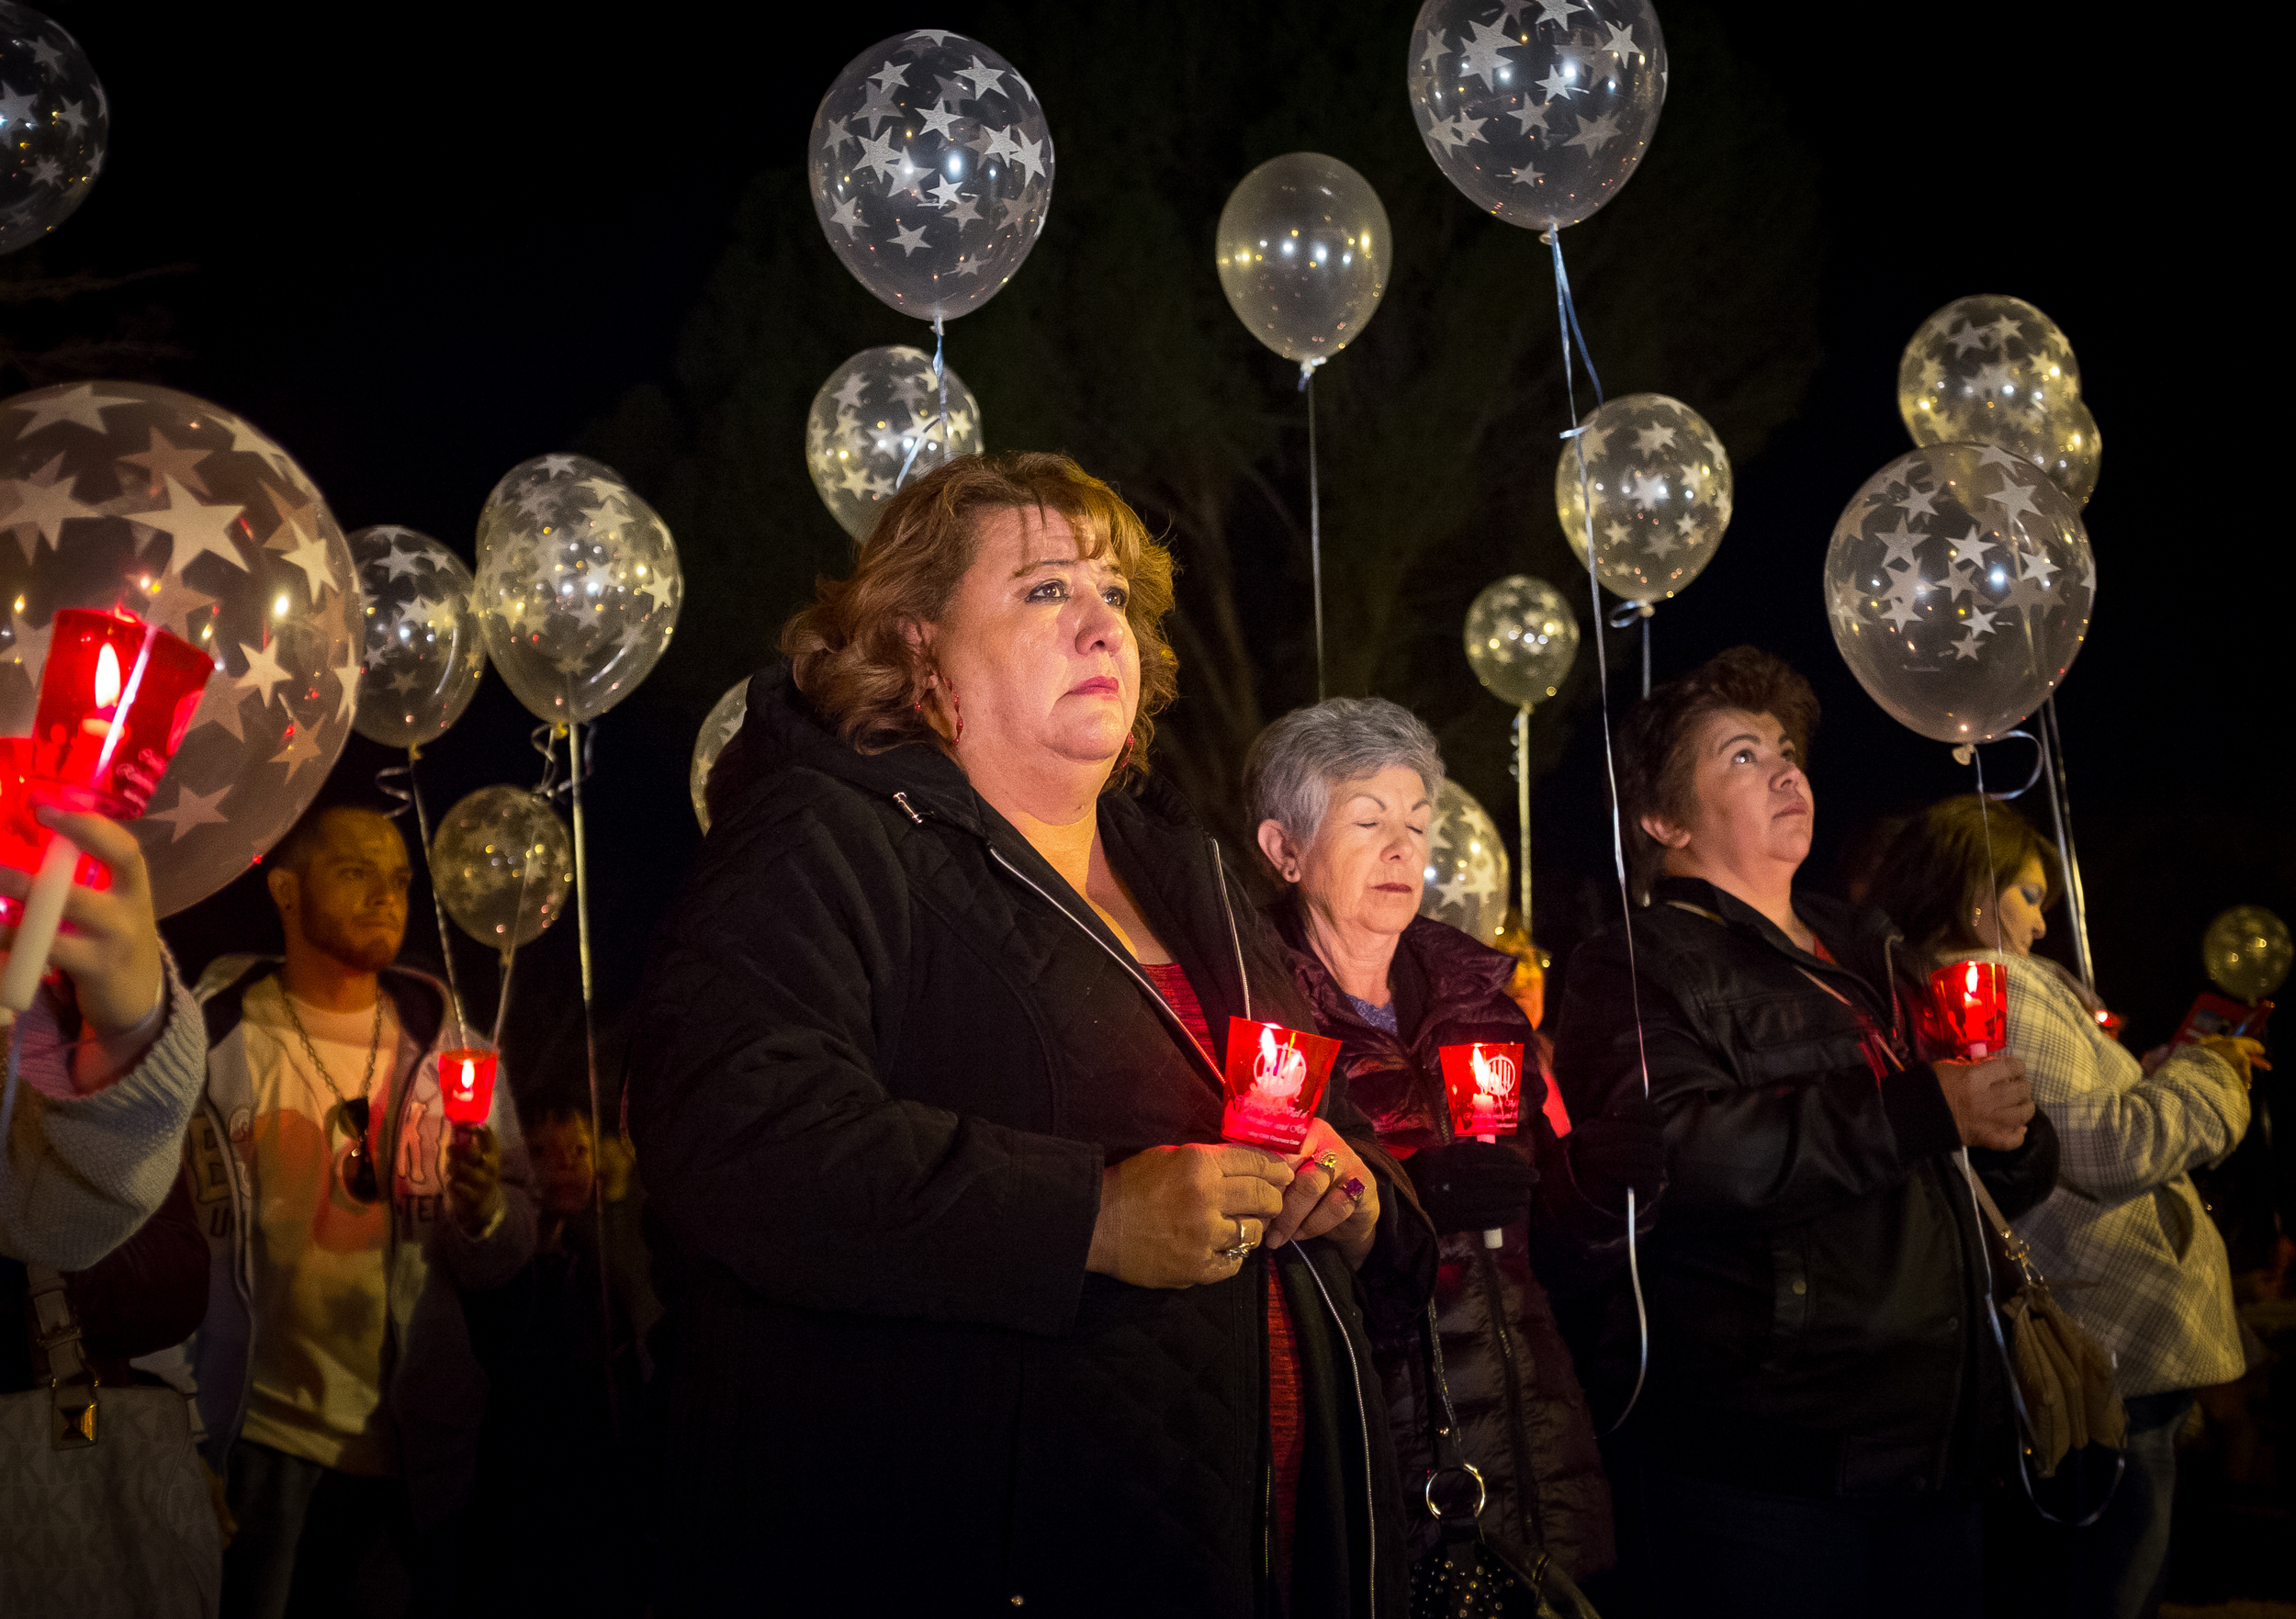 Cynthia Rivera, center, one of approximately 100 people at a Vigil of Remembrance and Hope for DWI and Homicide Victims at Pioneer Park on Saturday evening, holds a candle in remembrance of her husband and two children killed in an accident involving a drunk driver in 1995.